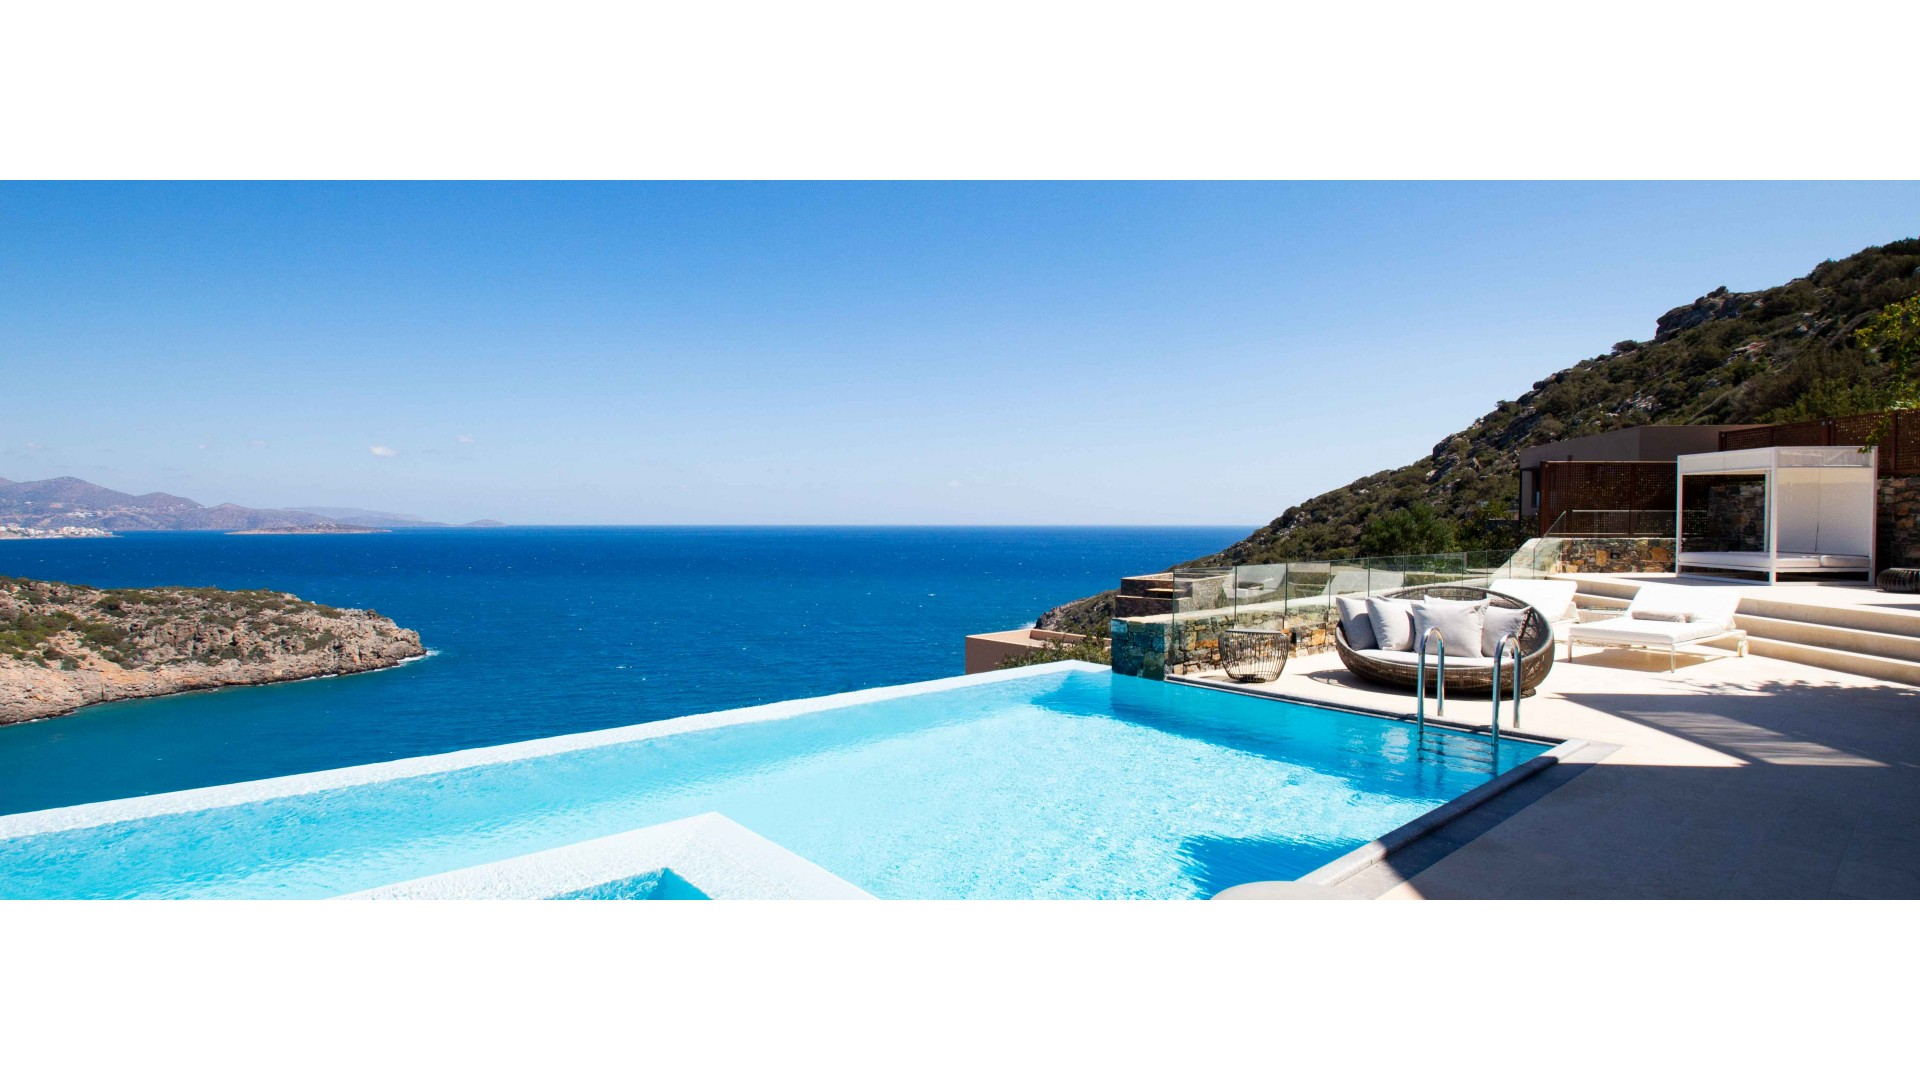 Rooms Suites At Daios Cove Mansion Crete Smith Hotels